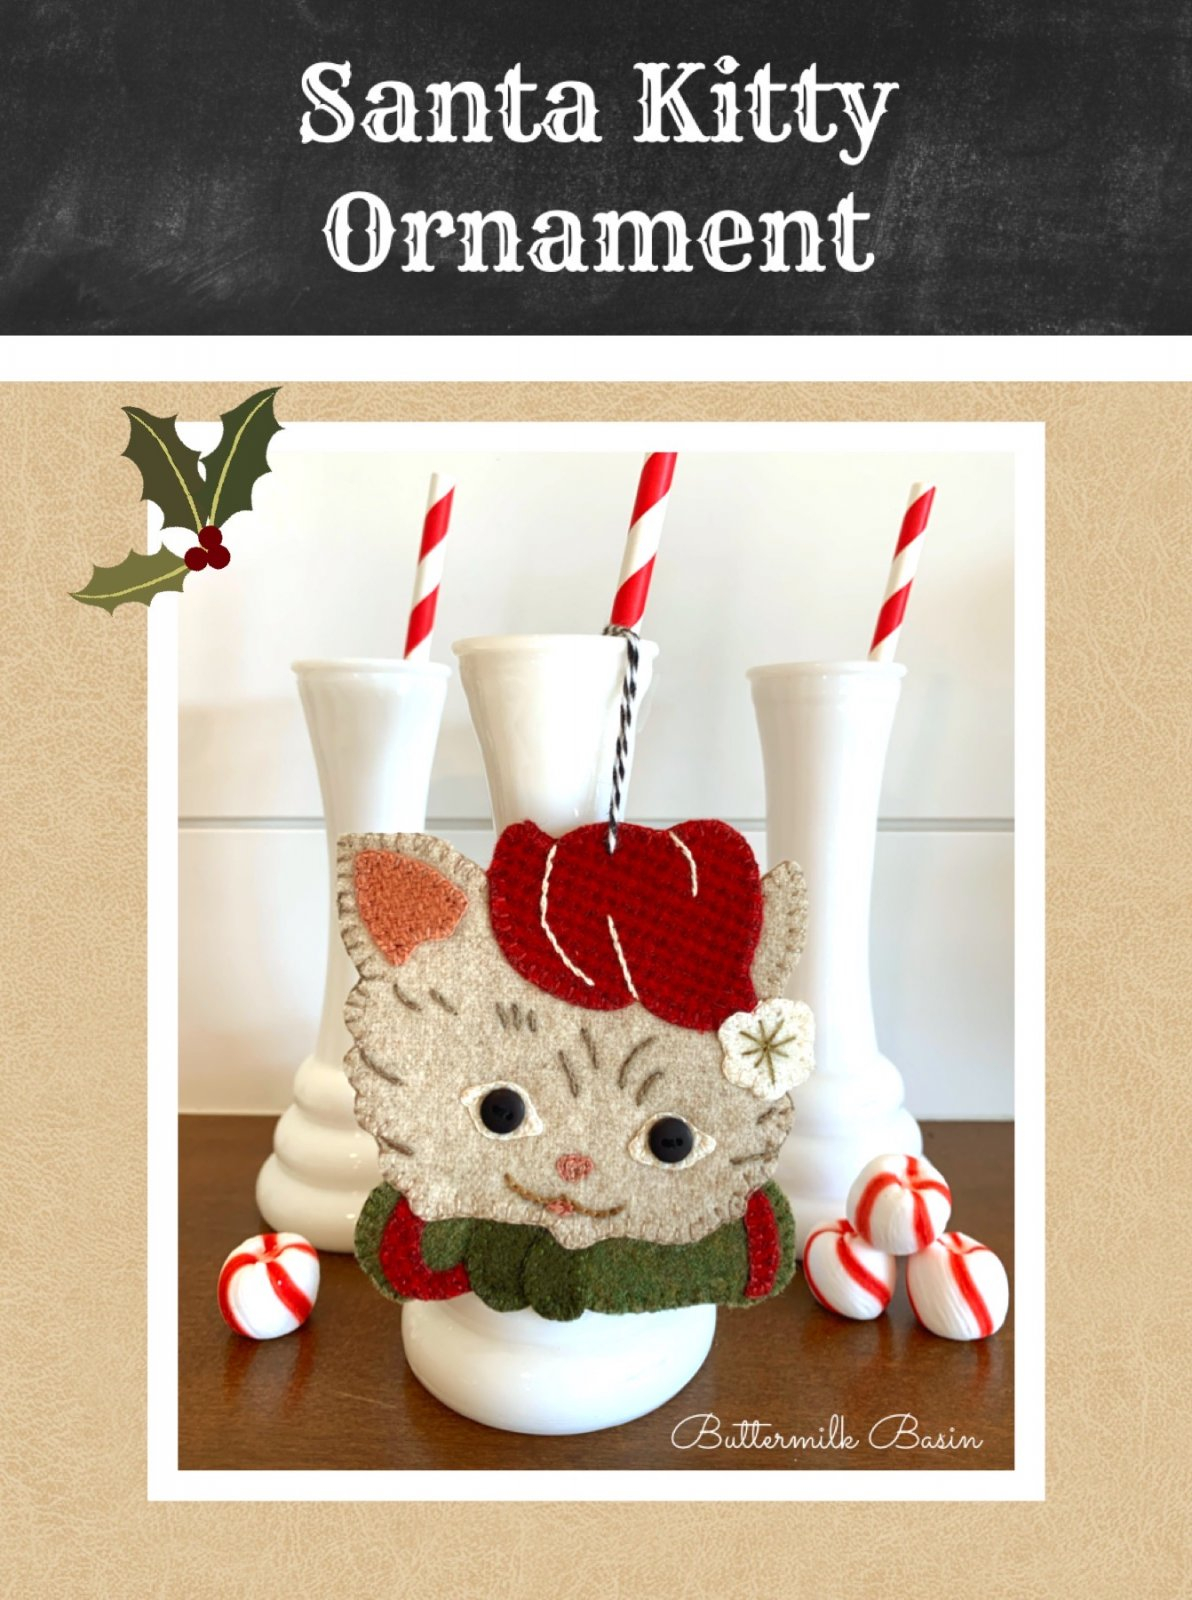 Santa Kitty Ornament * Kit & Pattern